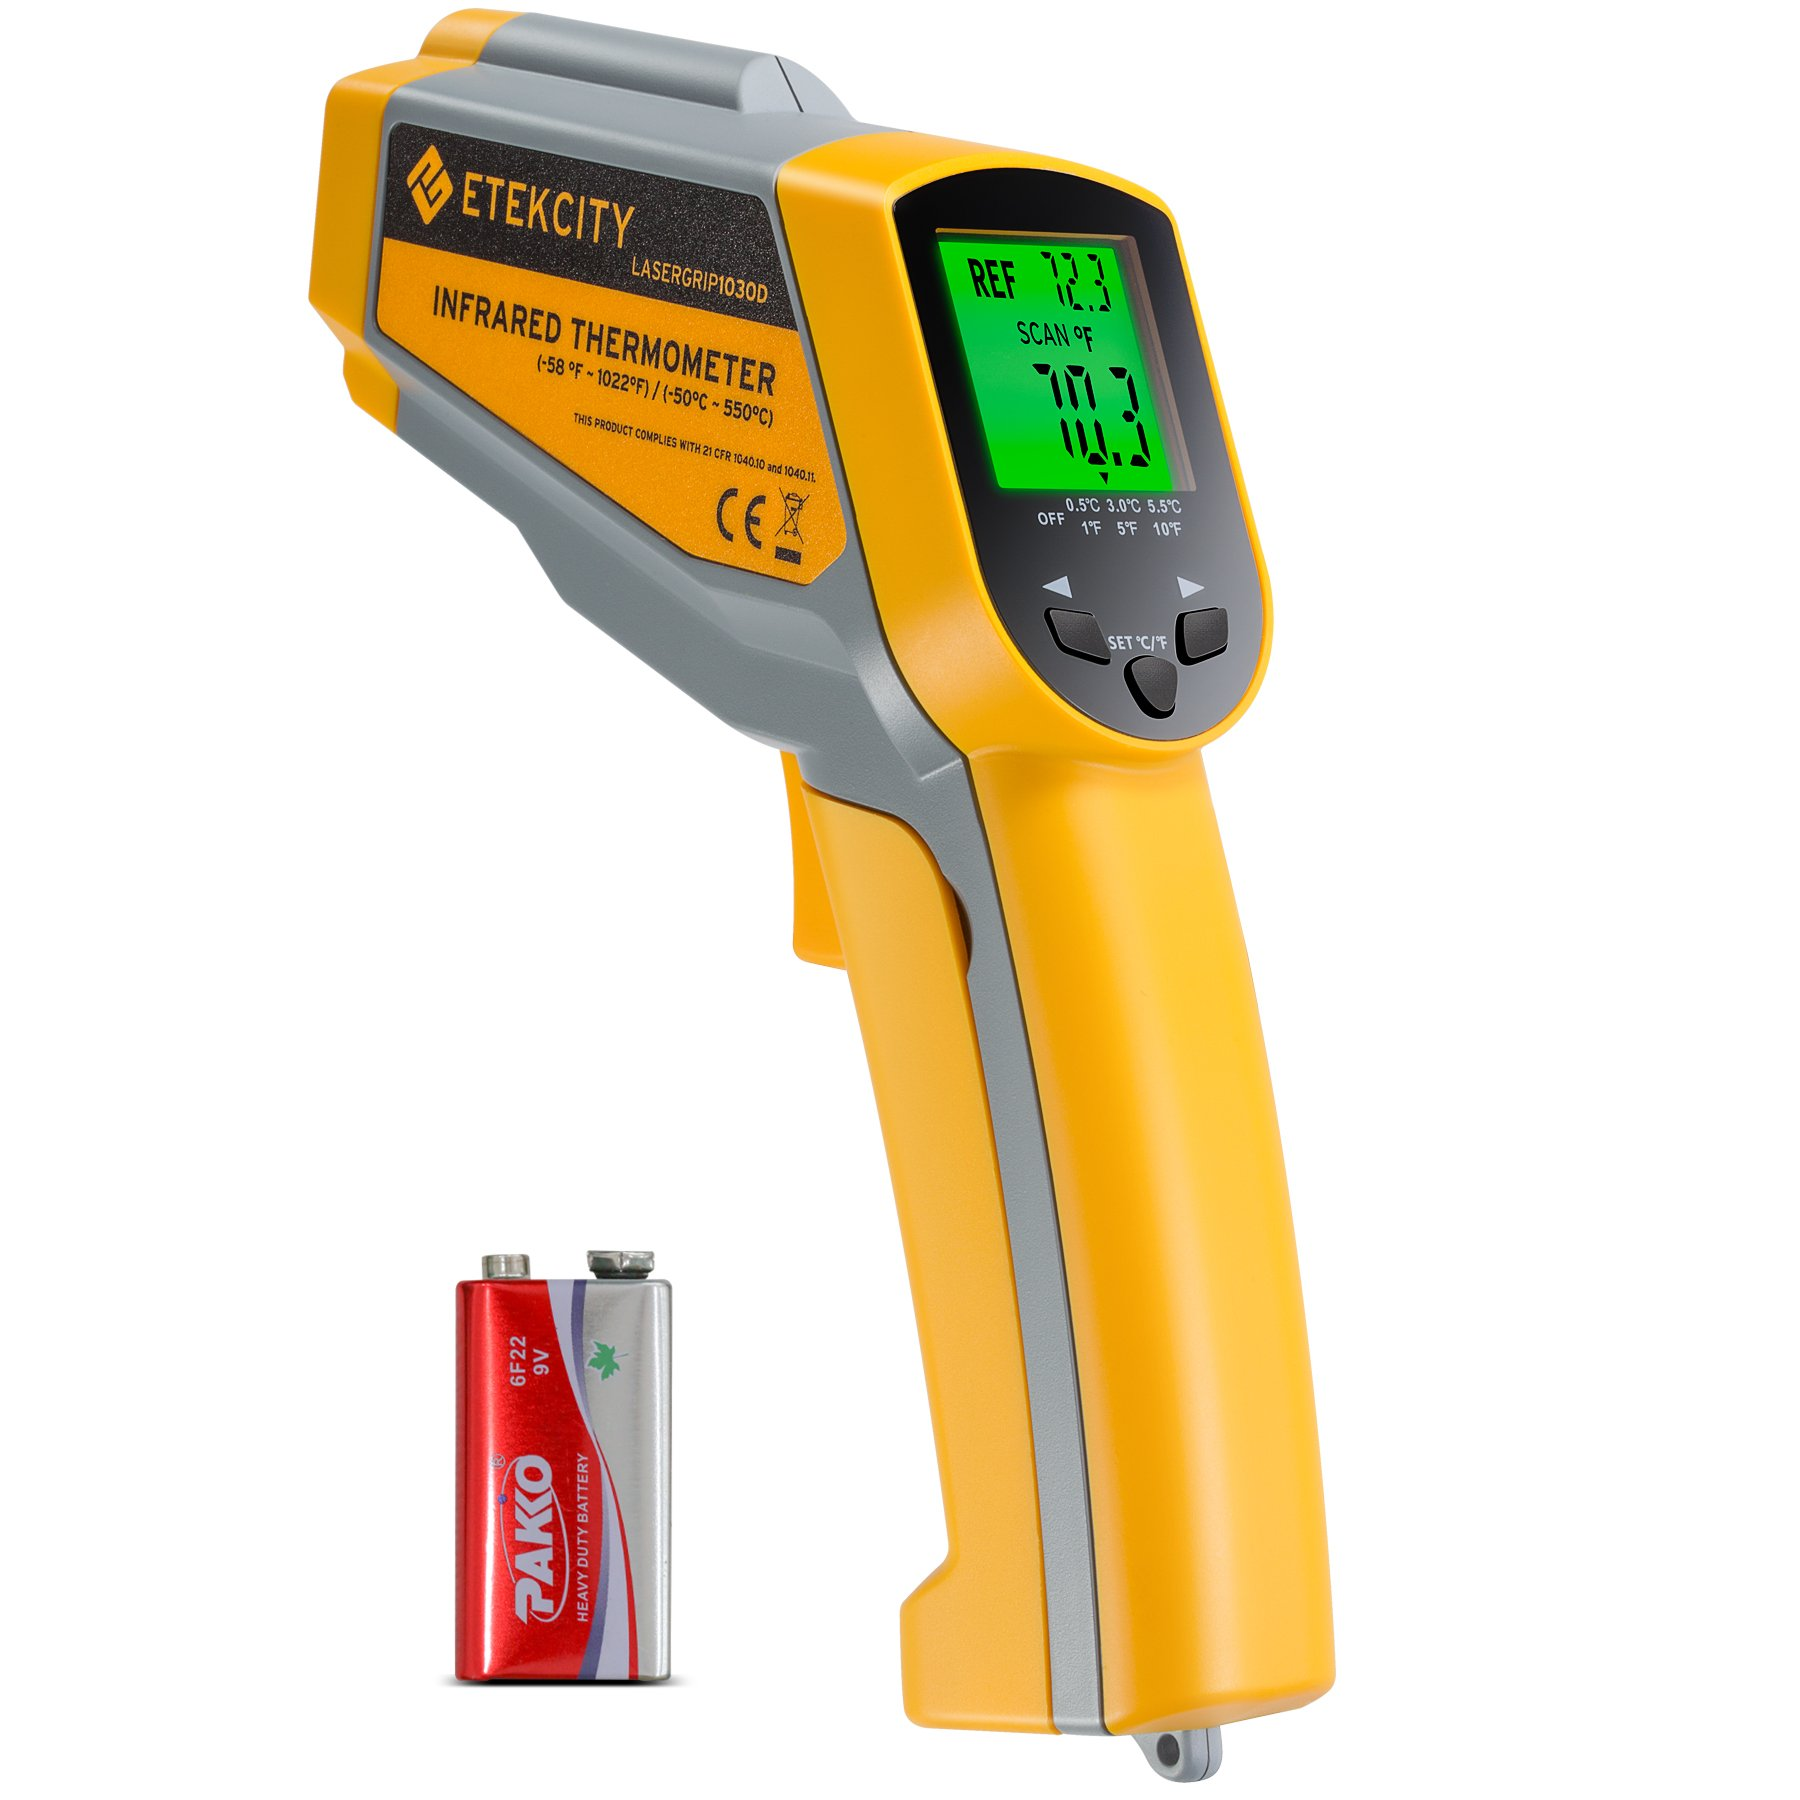 Etekcity Lasergrip1030D Infrared Thermometer Digital Dual Laser Temperature Gun Non-contact with Temperature Filtering -58℉~1022℉ (-50℃ ~ 550℃)